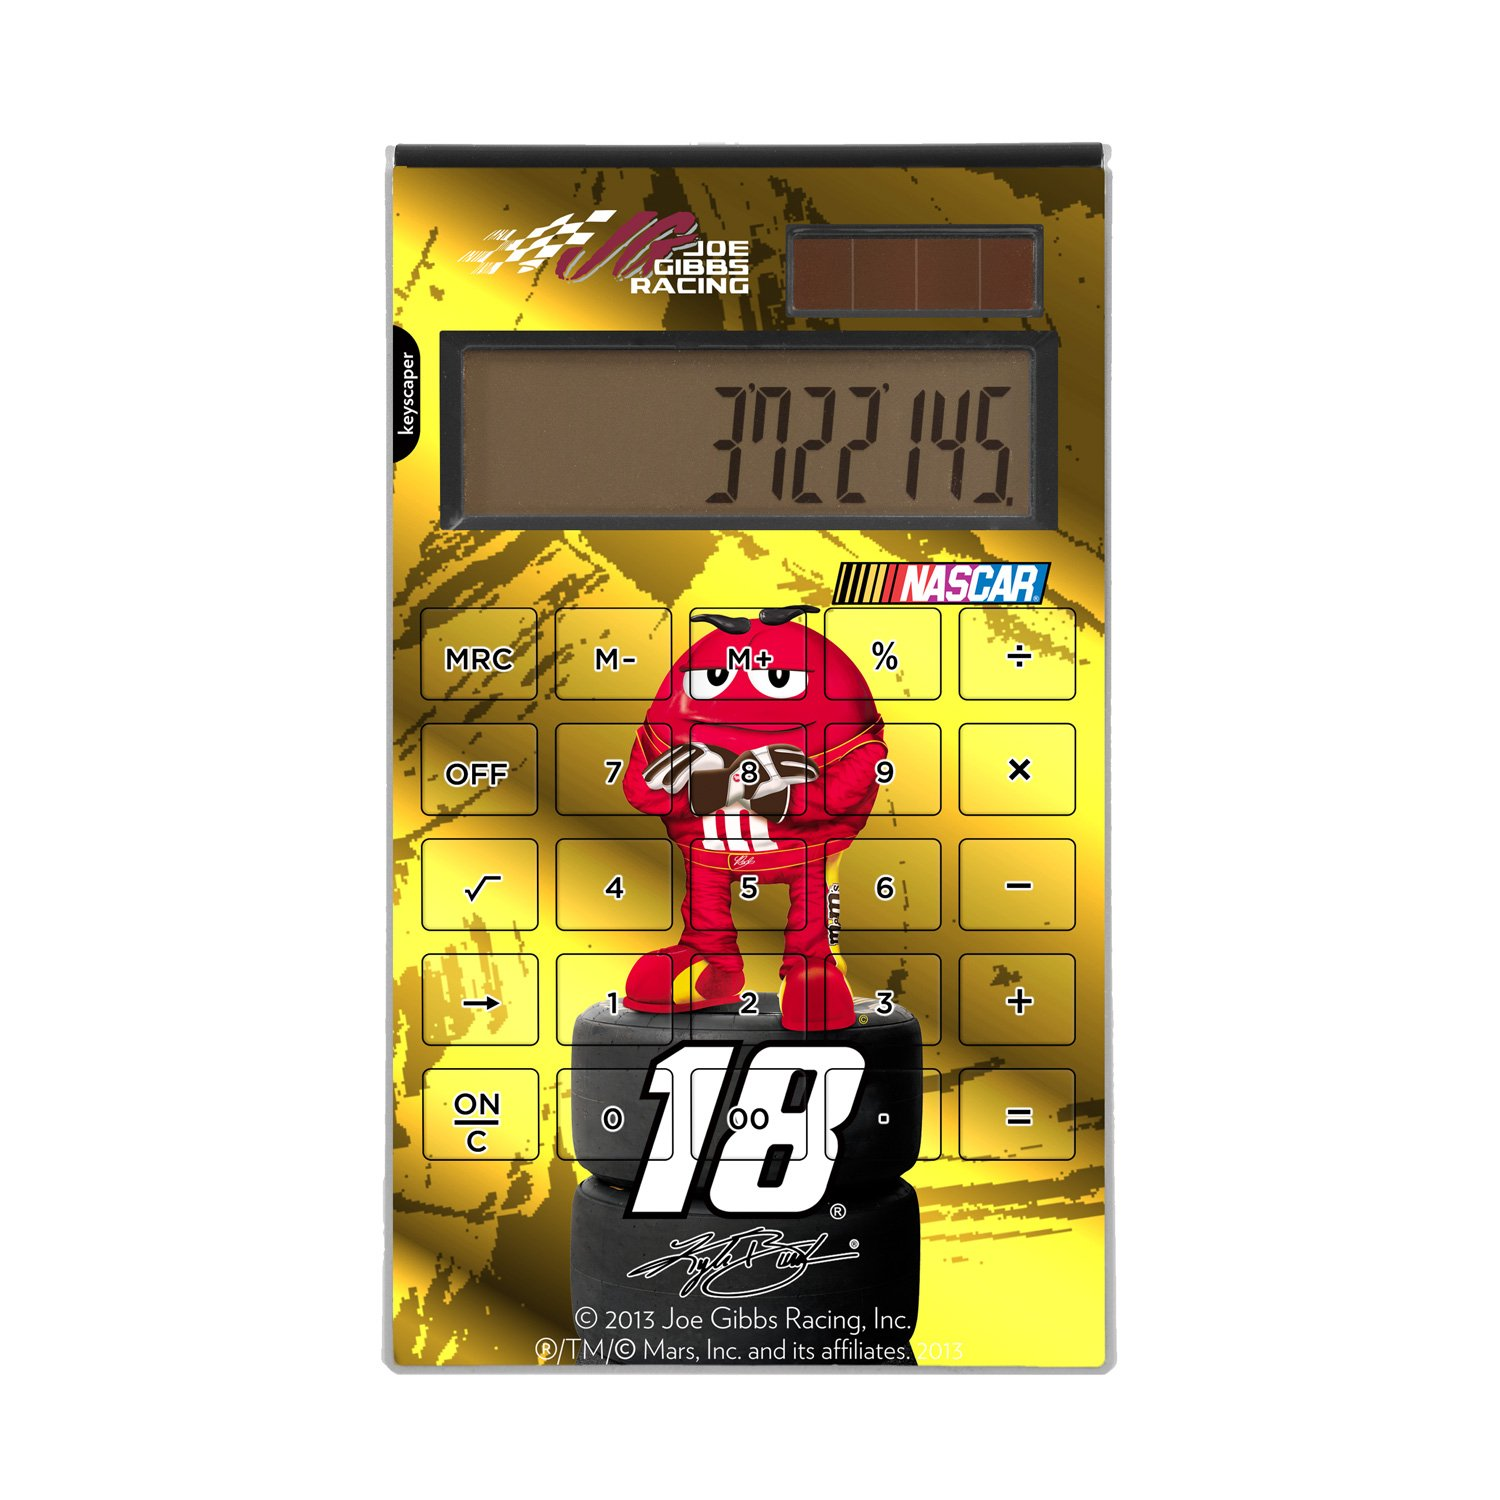 Kyle Busch Desktop Calculator officially licensed by NASCAR Full Size Large Button Solar by keyscaper® by Keyscaper